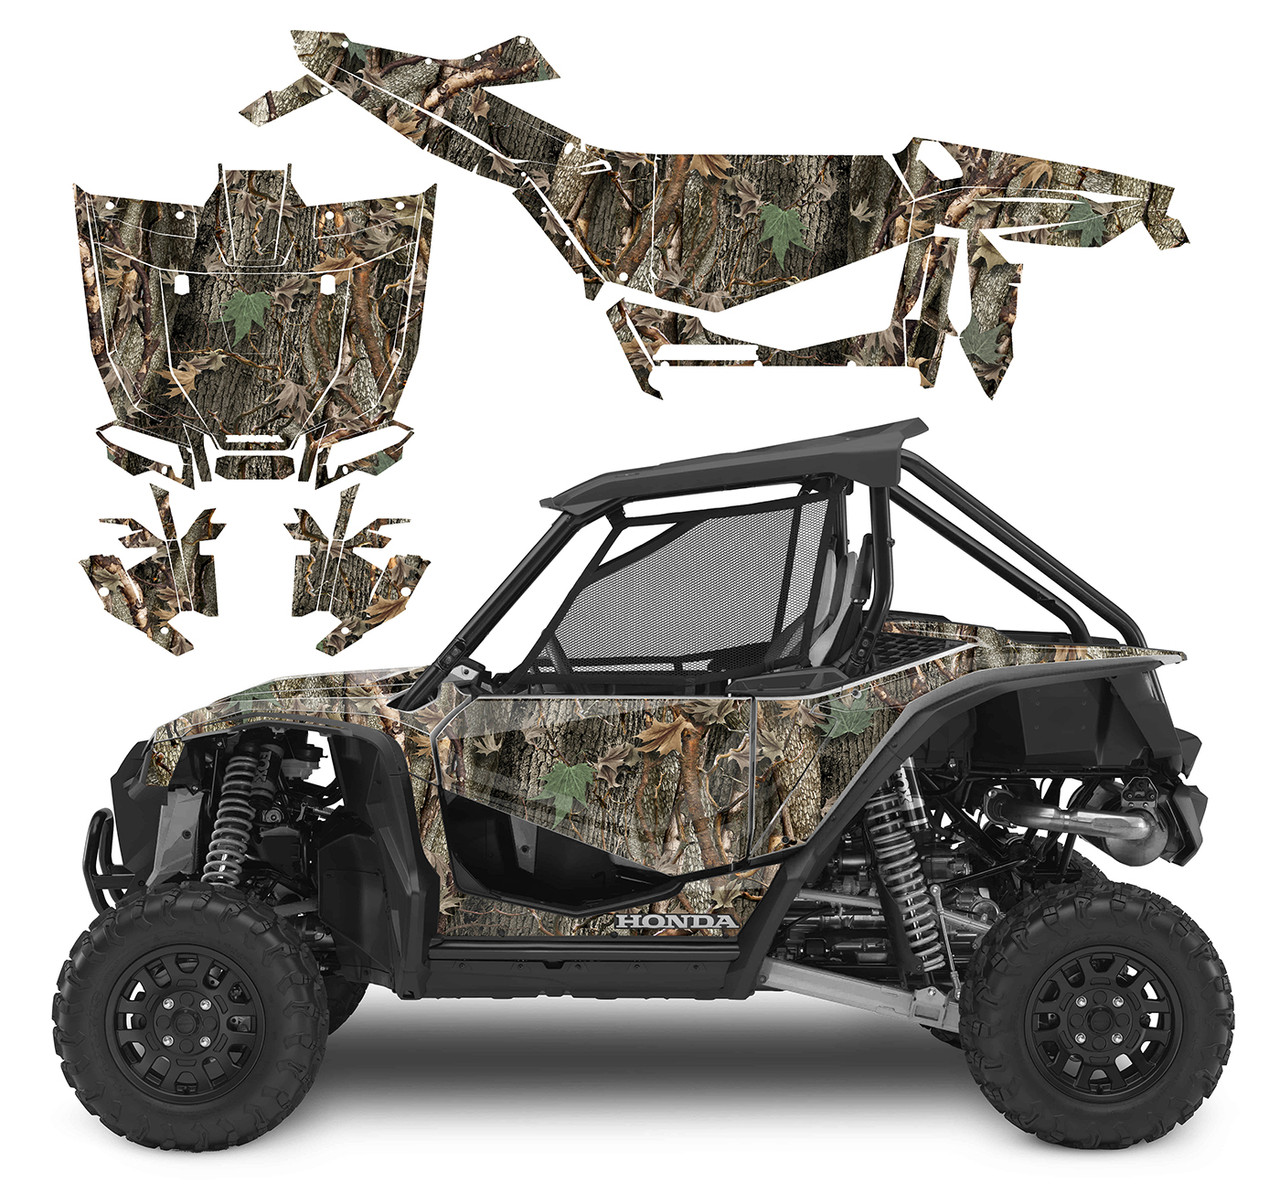 Ambushed Camo wrap kit for Honda Talon 1000